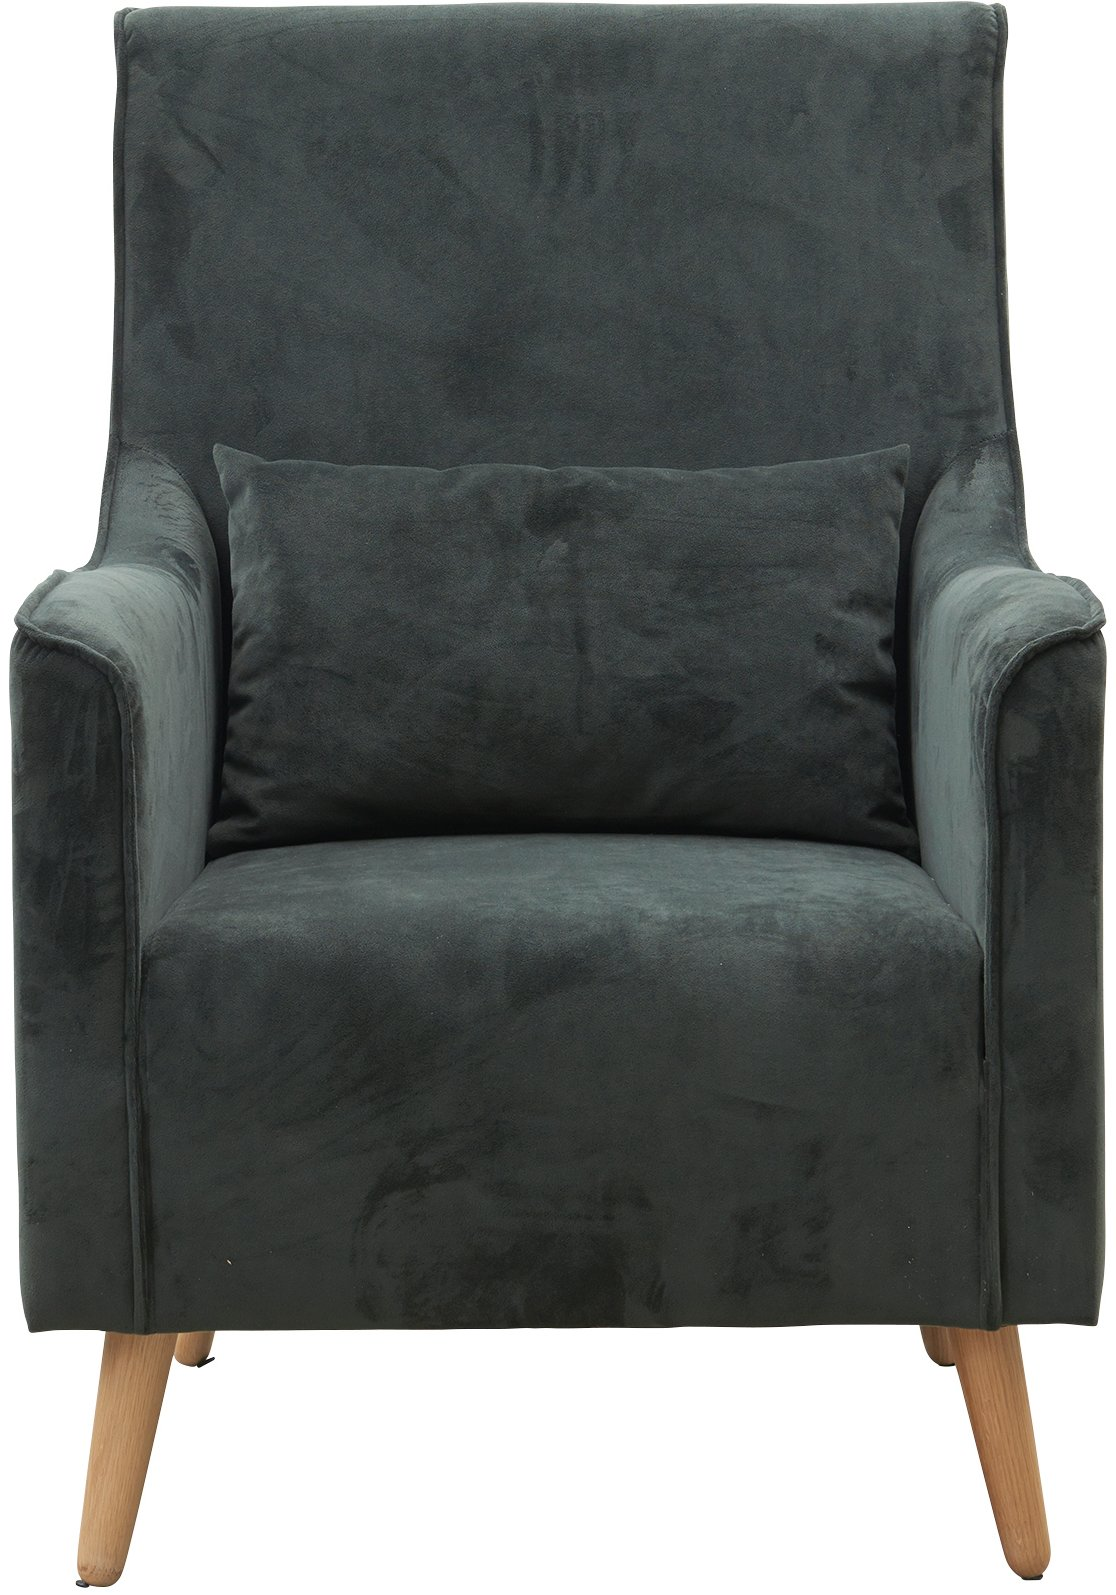 House Doctor Chaz fauteuil